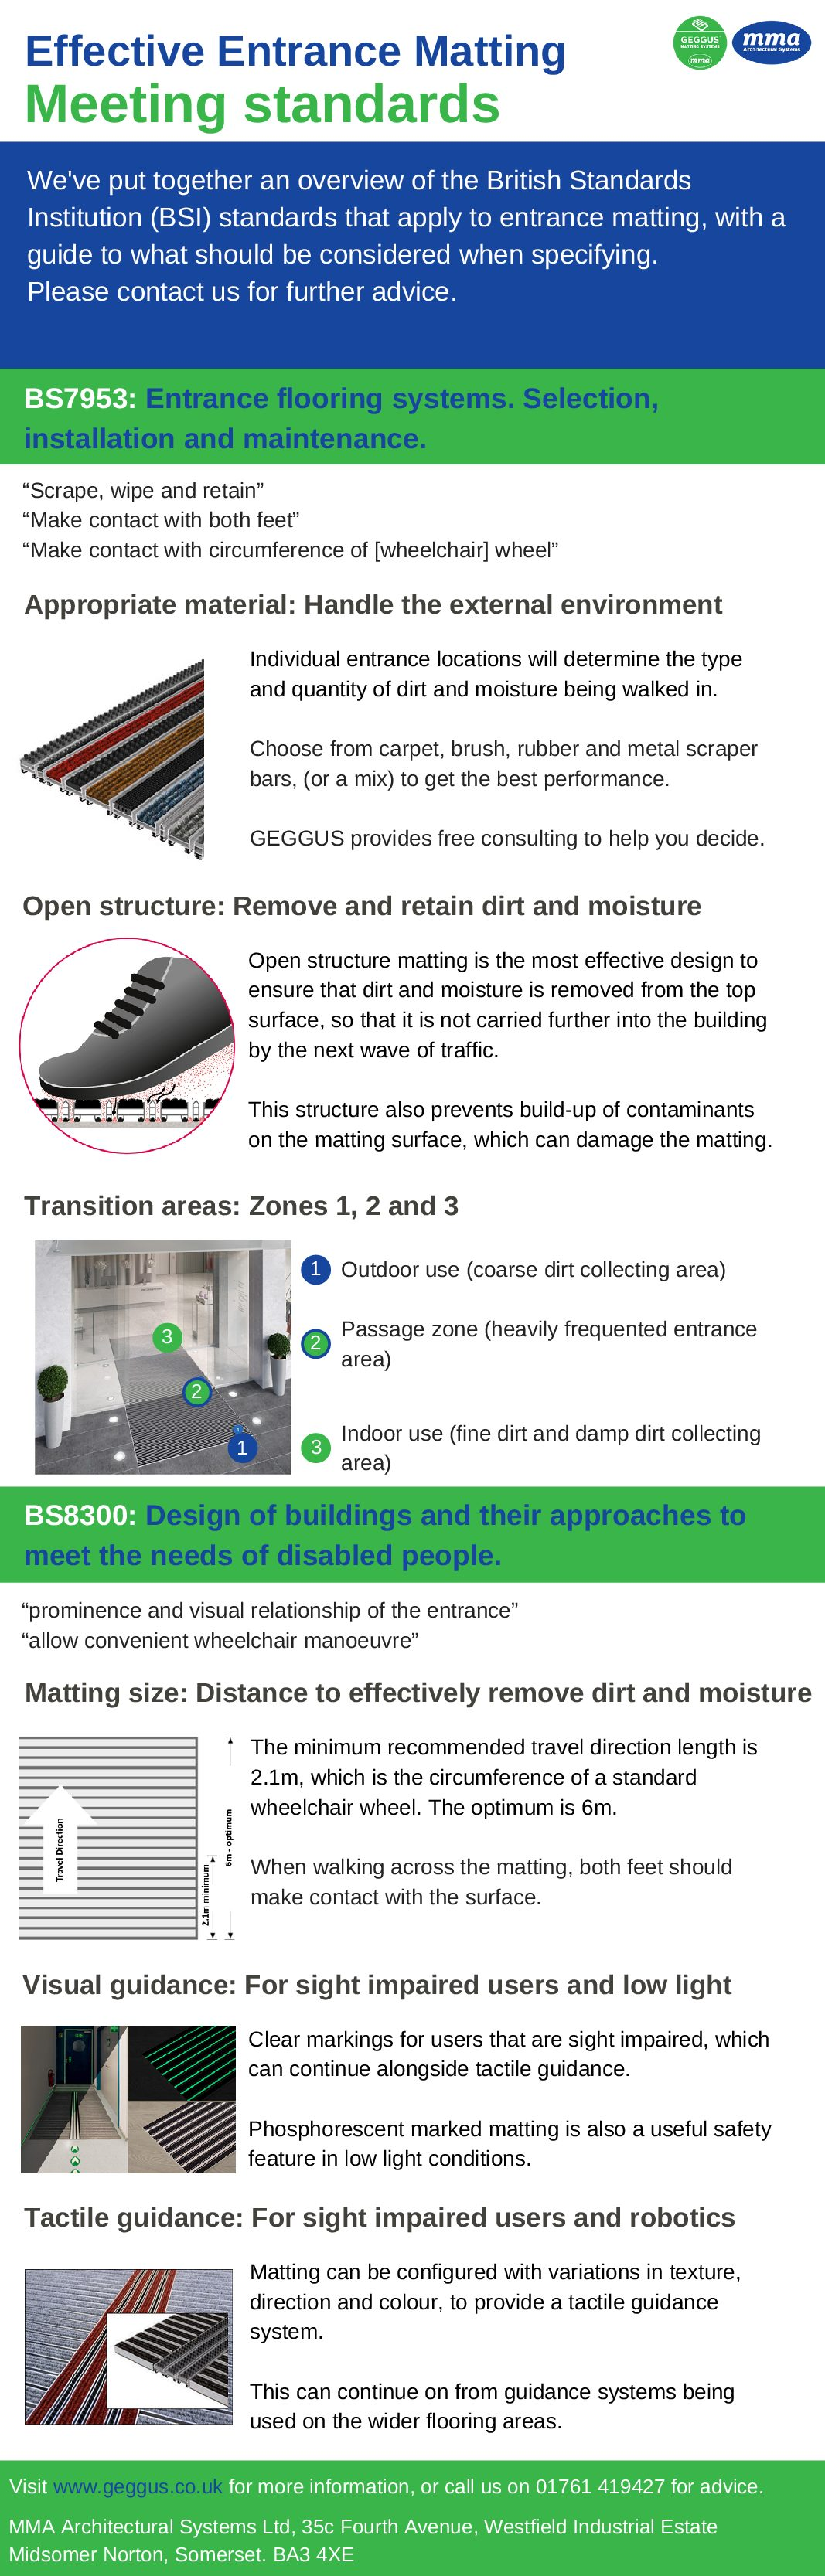 Effective Entrance Matting - Meeting Standards